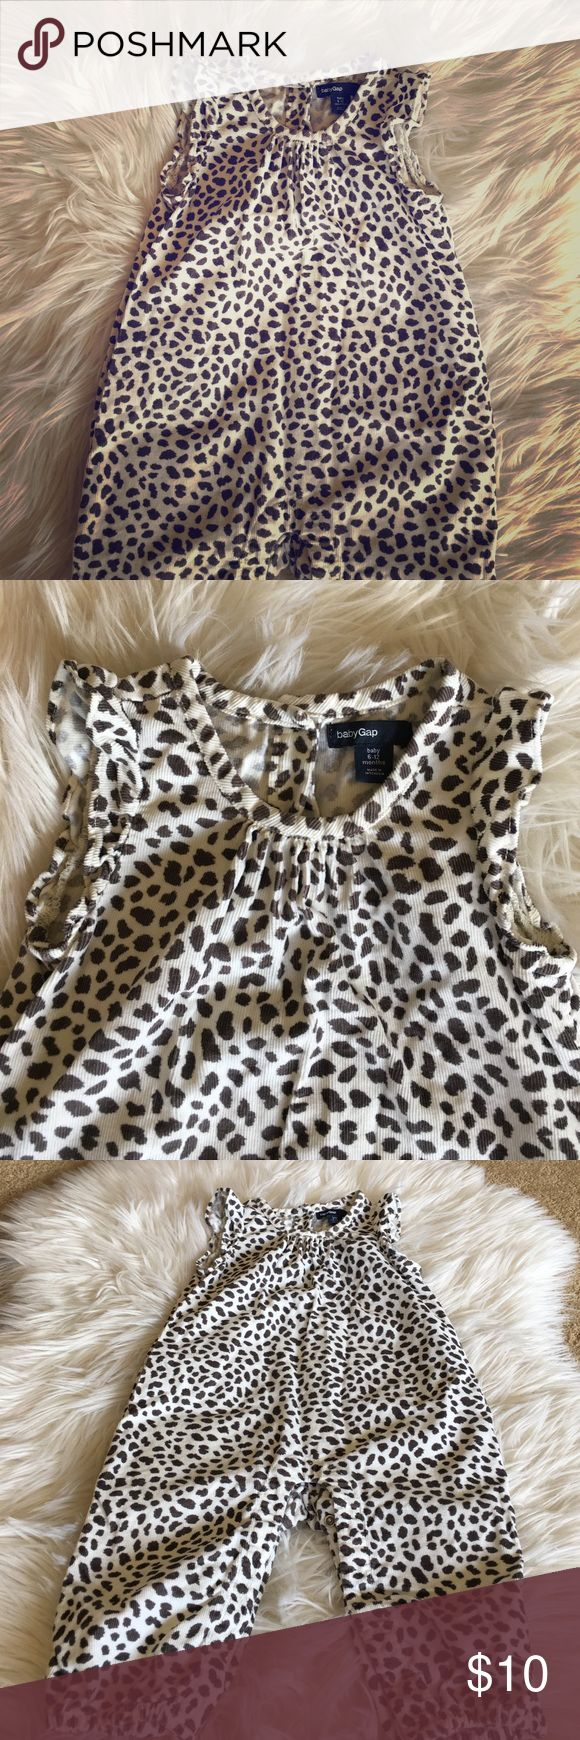 Baby Gap baby wale corduroy one piece 6-12 M Adorable little animal print one piece with cap flutter sleeve, pleating detail at neck. 3 button closure at back & snap legs. Elasticized leg bottoms. The animal print is kind of a brownish gray color on ivory. EUC baby gap One Pieces